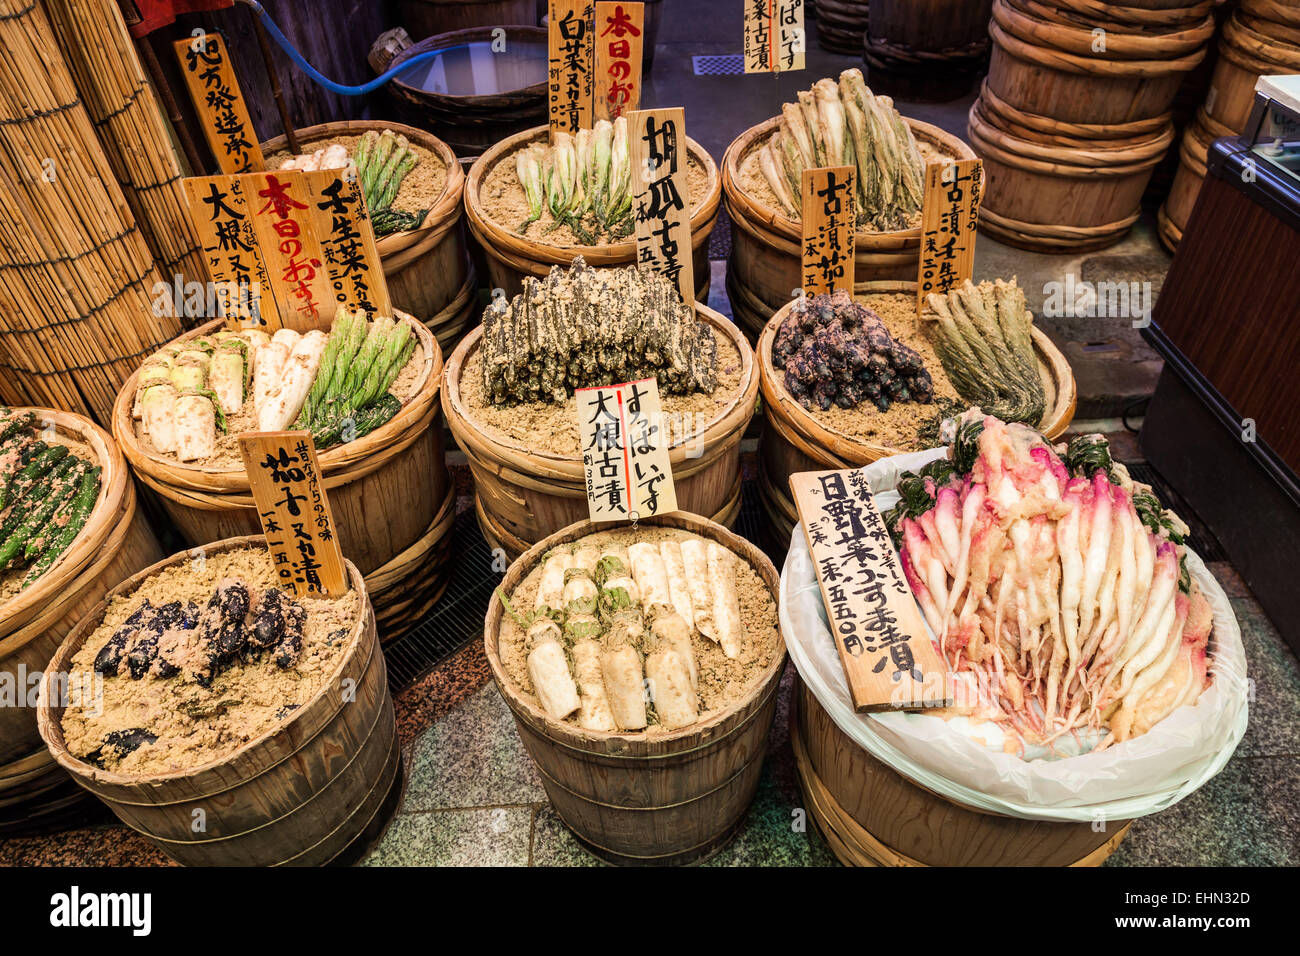 Vegetables preserved in brine in a market in Japan. - Stock Image